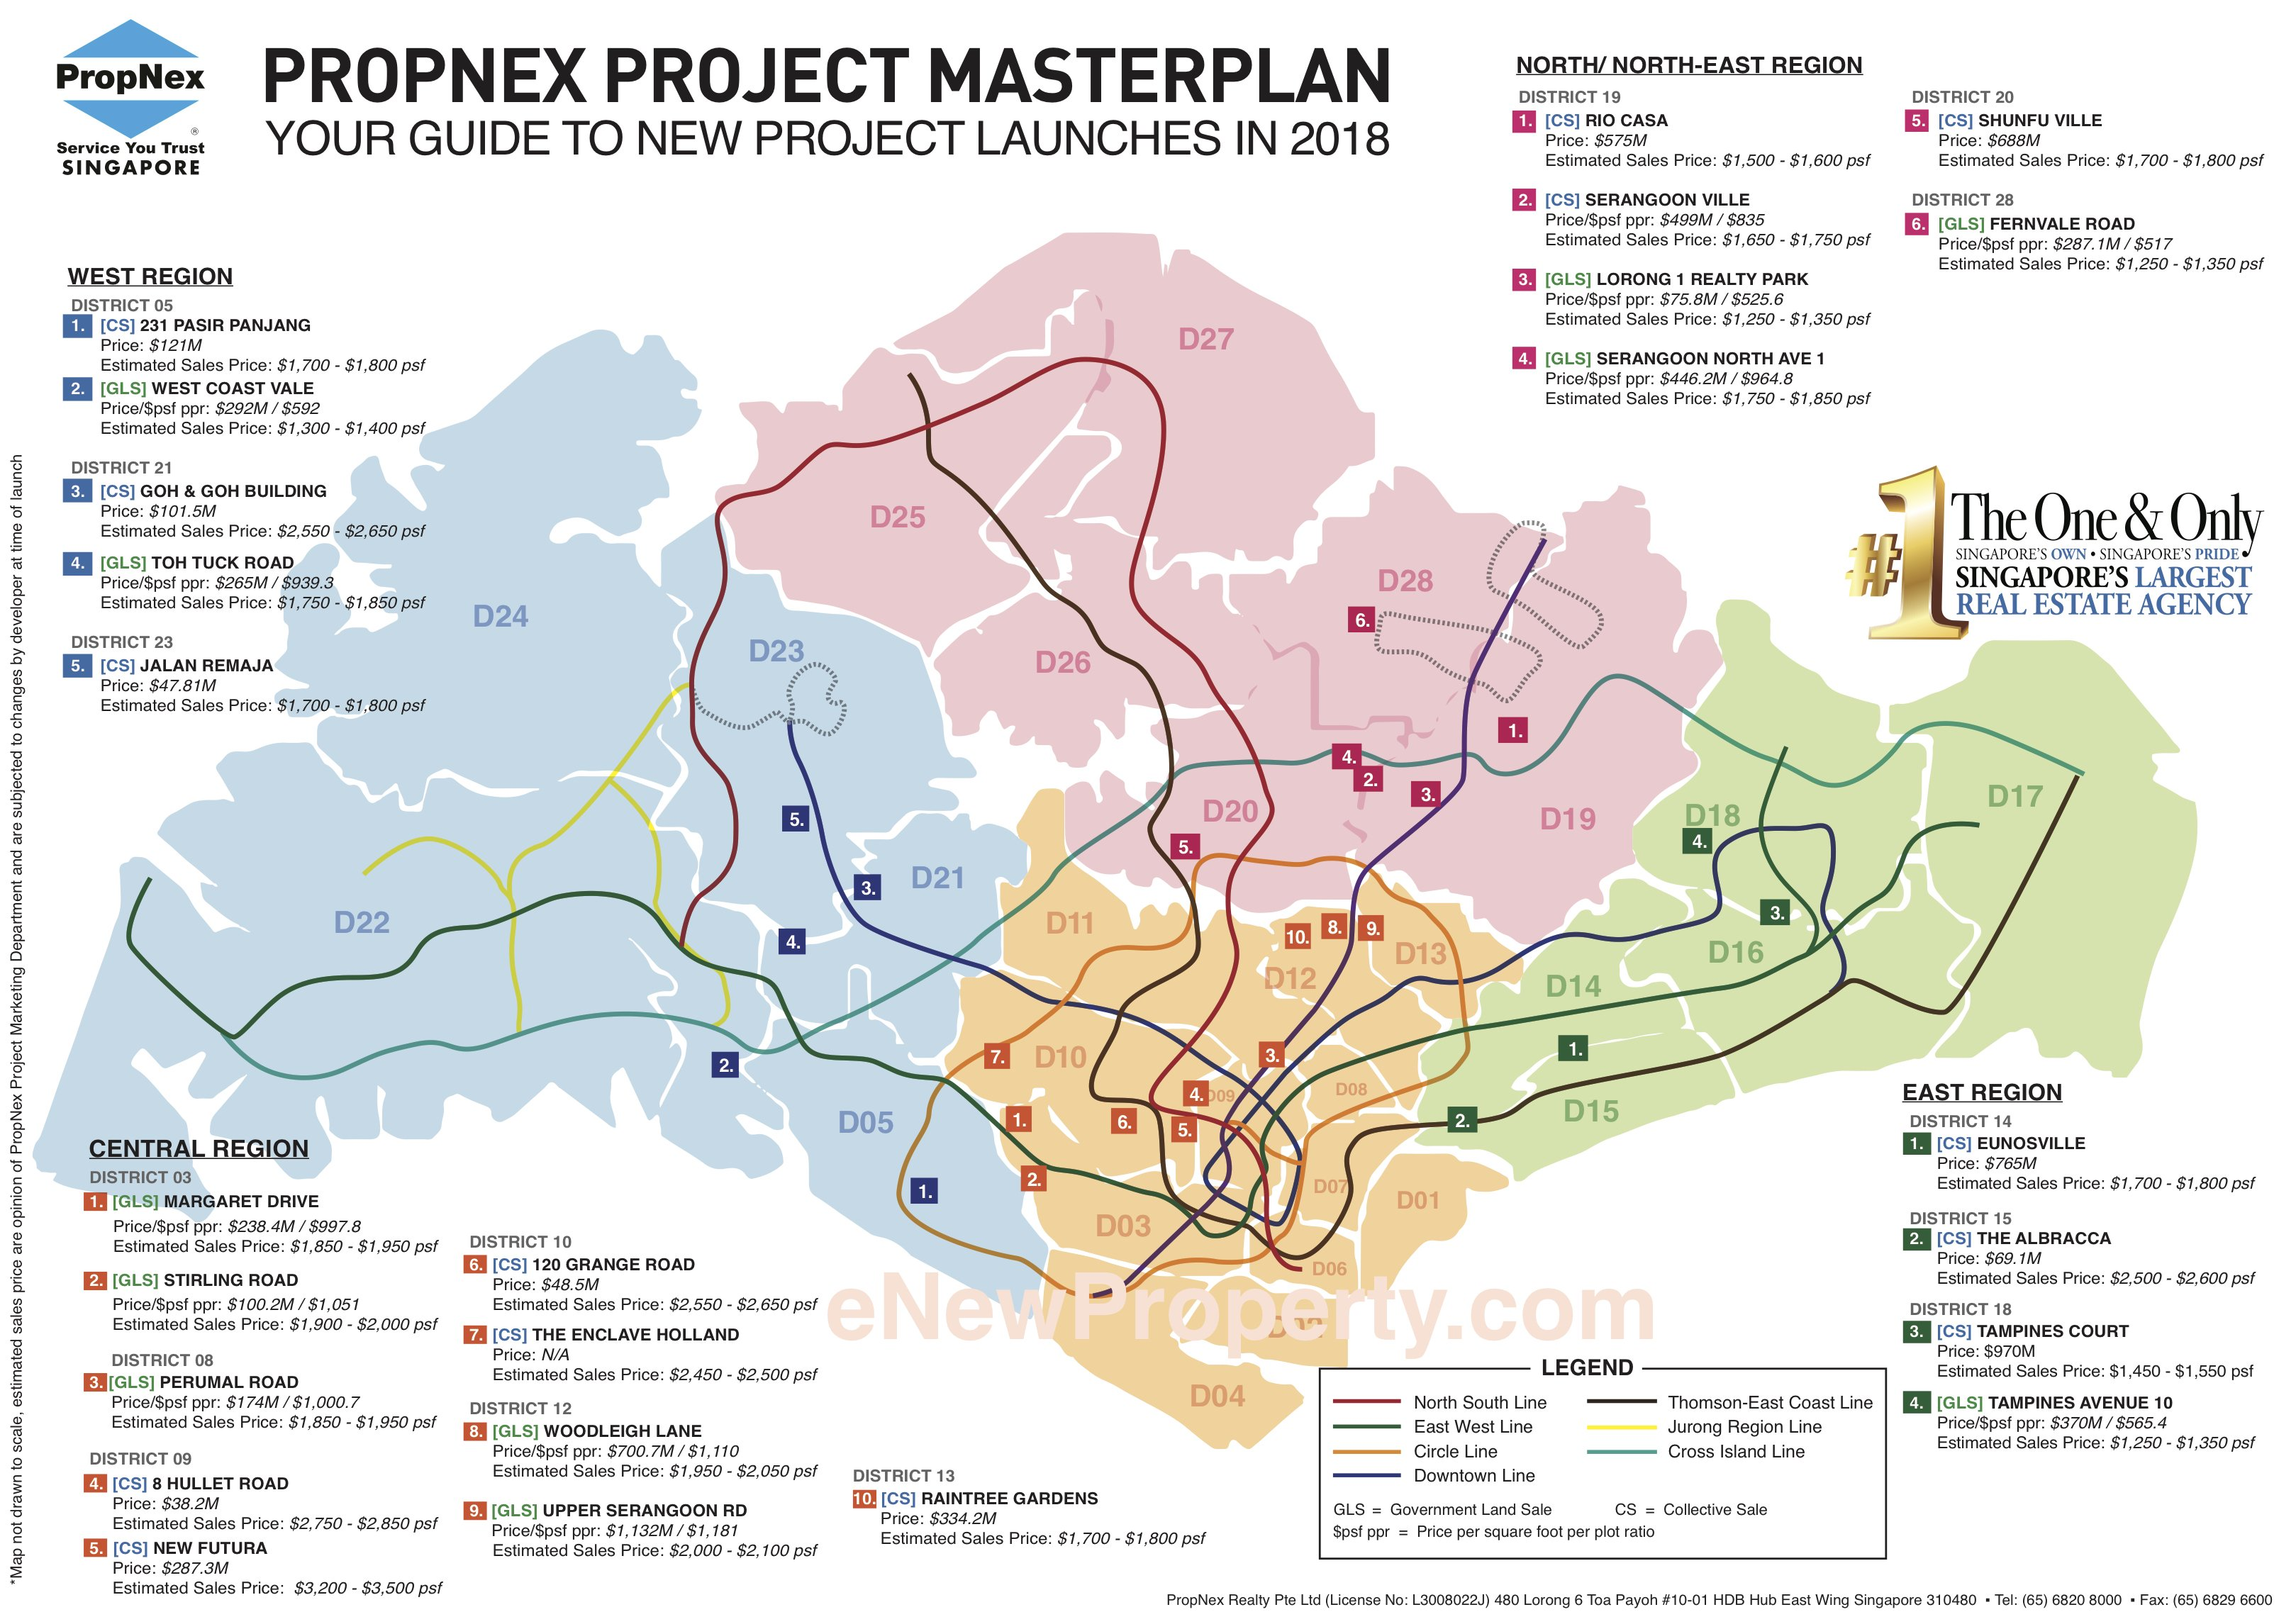 PropNex new launch projects master plan 2018